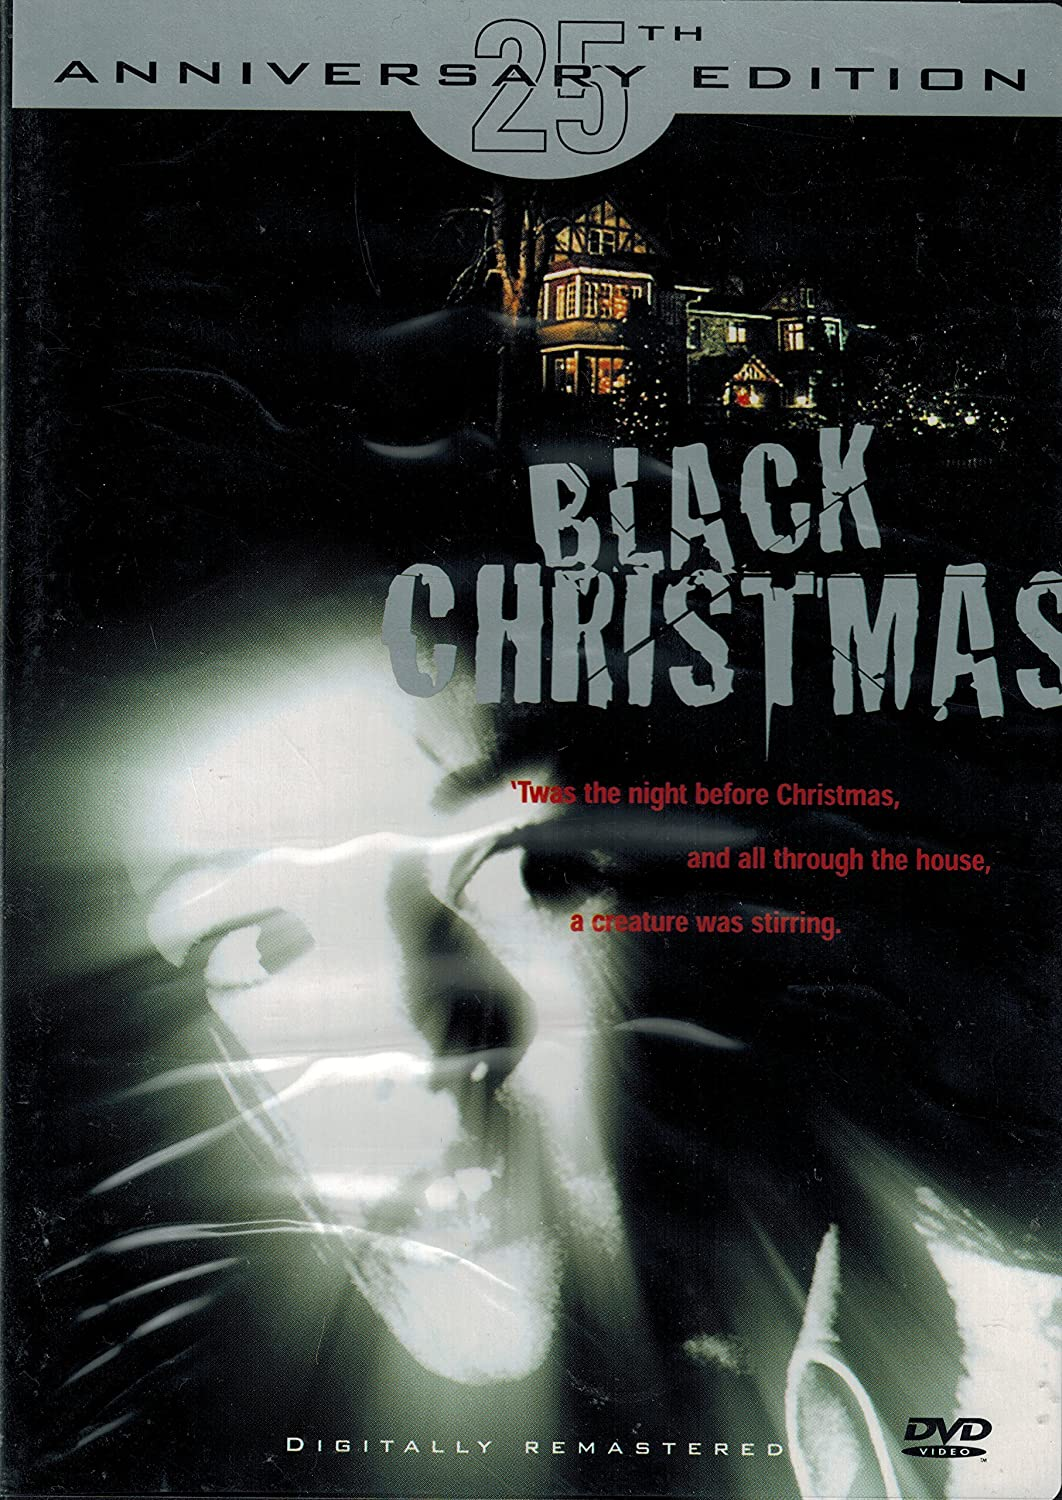 amazoncom black christmas olivia hussey keir dullea margot kidder john saxon marian waldman andrea martin james edmond doug mcgrath art hindle - Black Christmas 1974